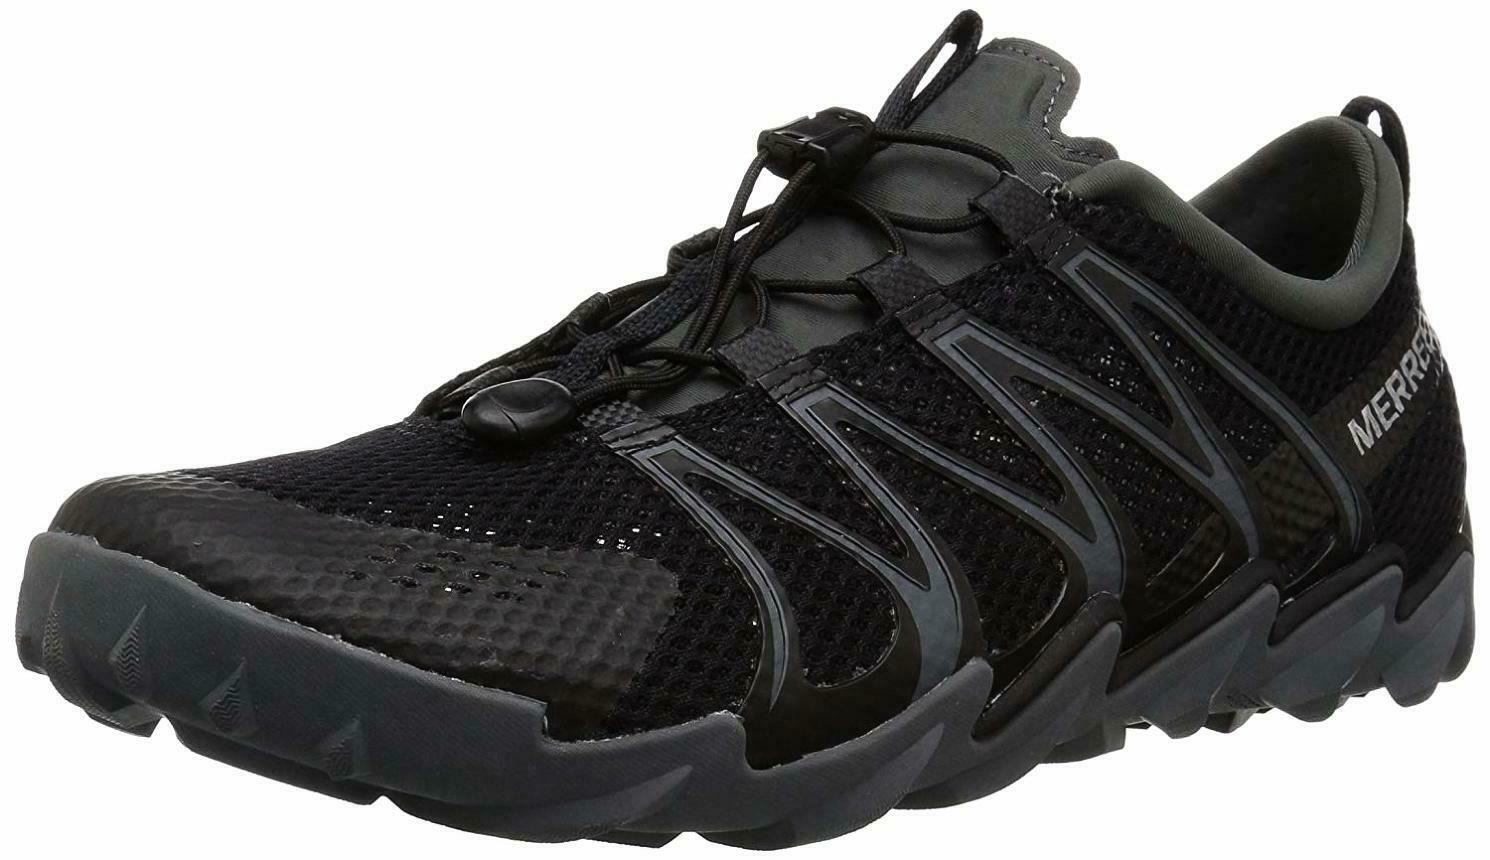 Merrell Men's Tetrex Hiking water shoe - Choose SZ color